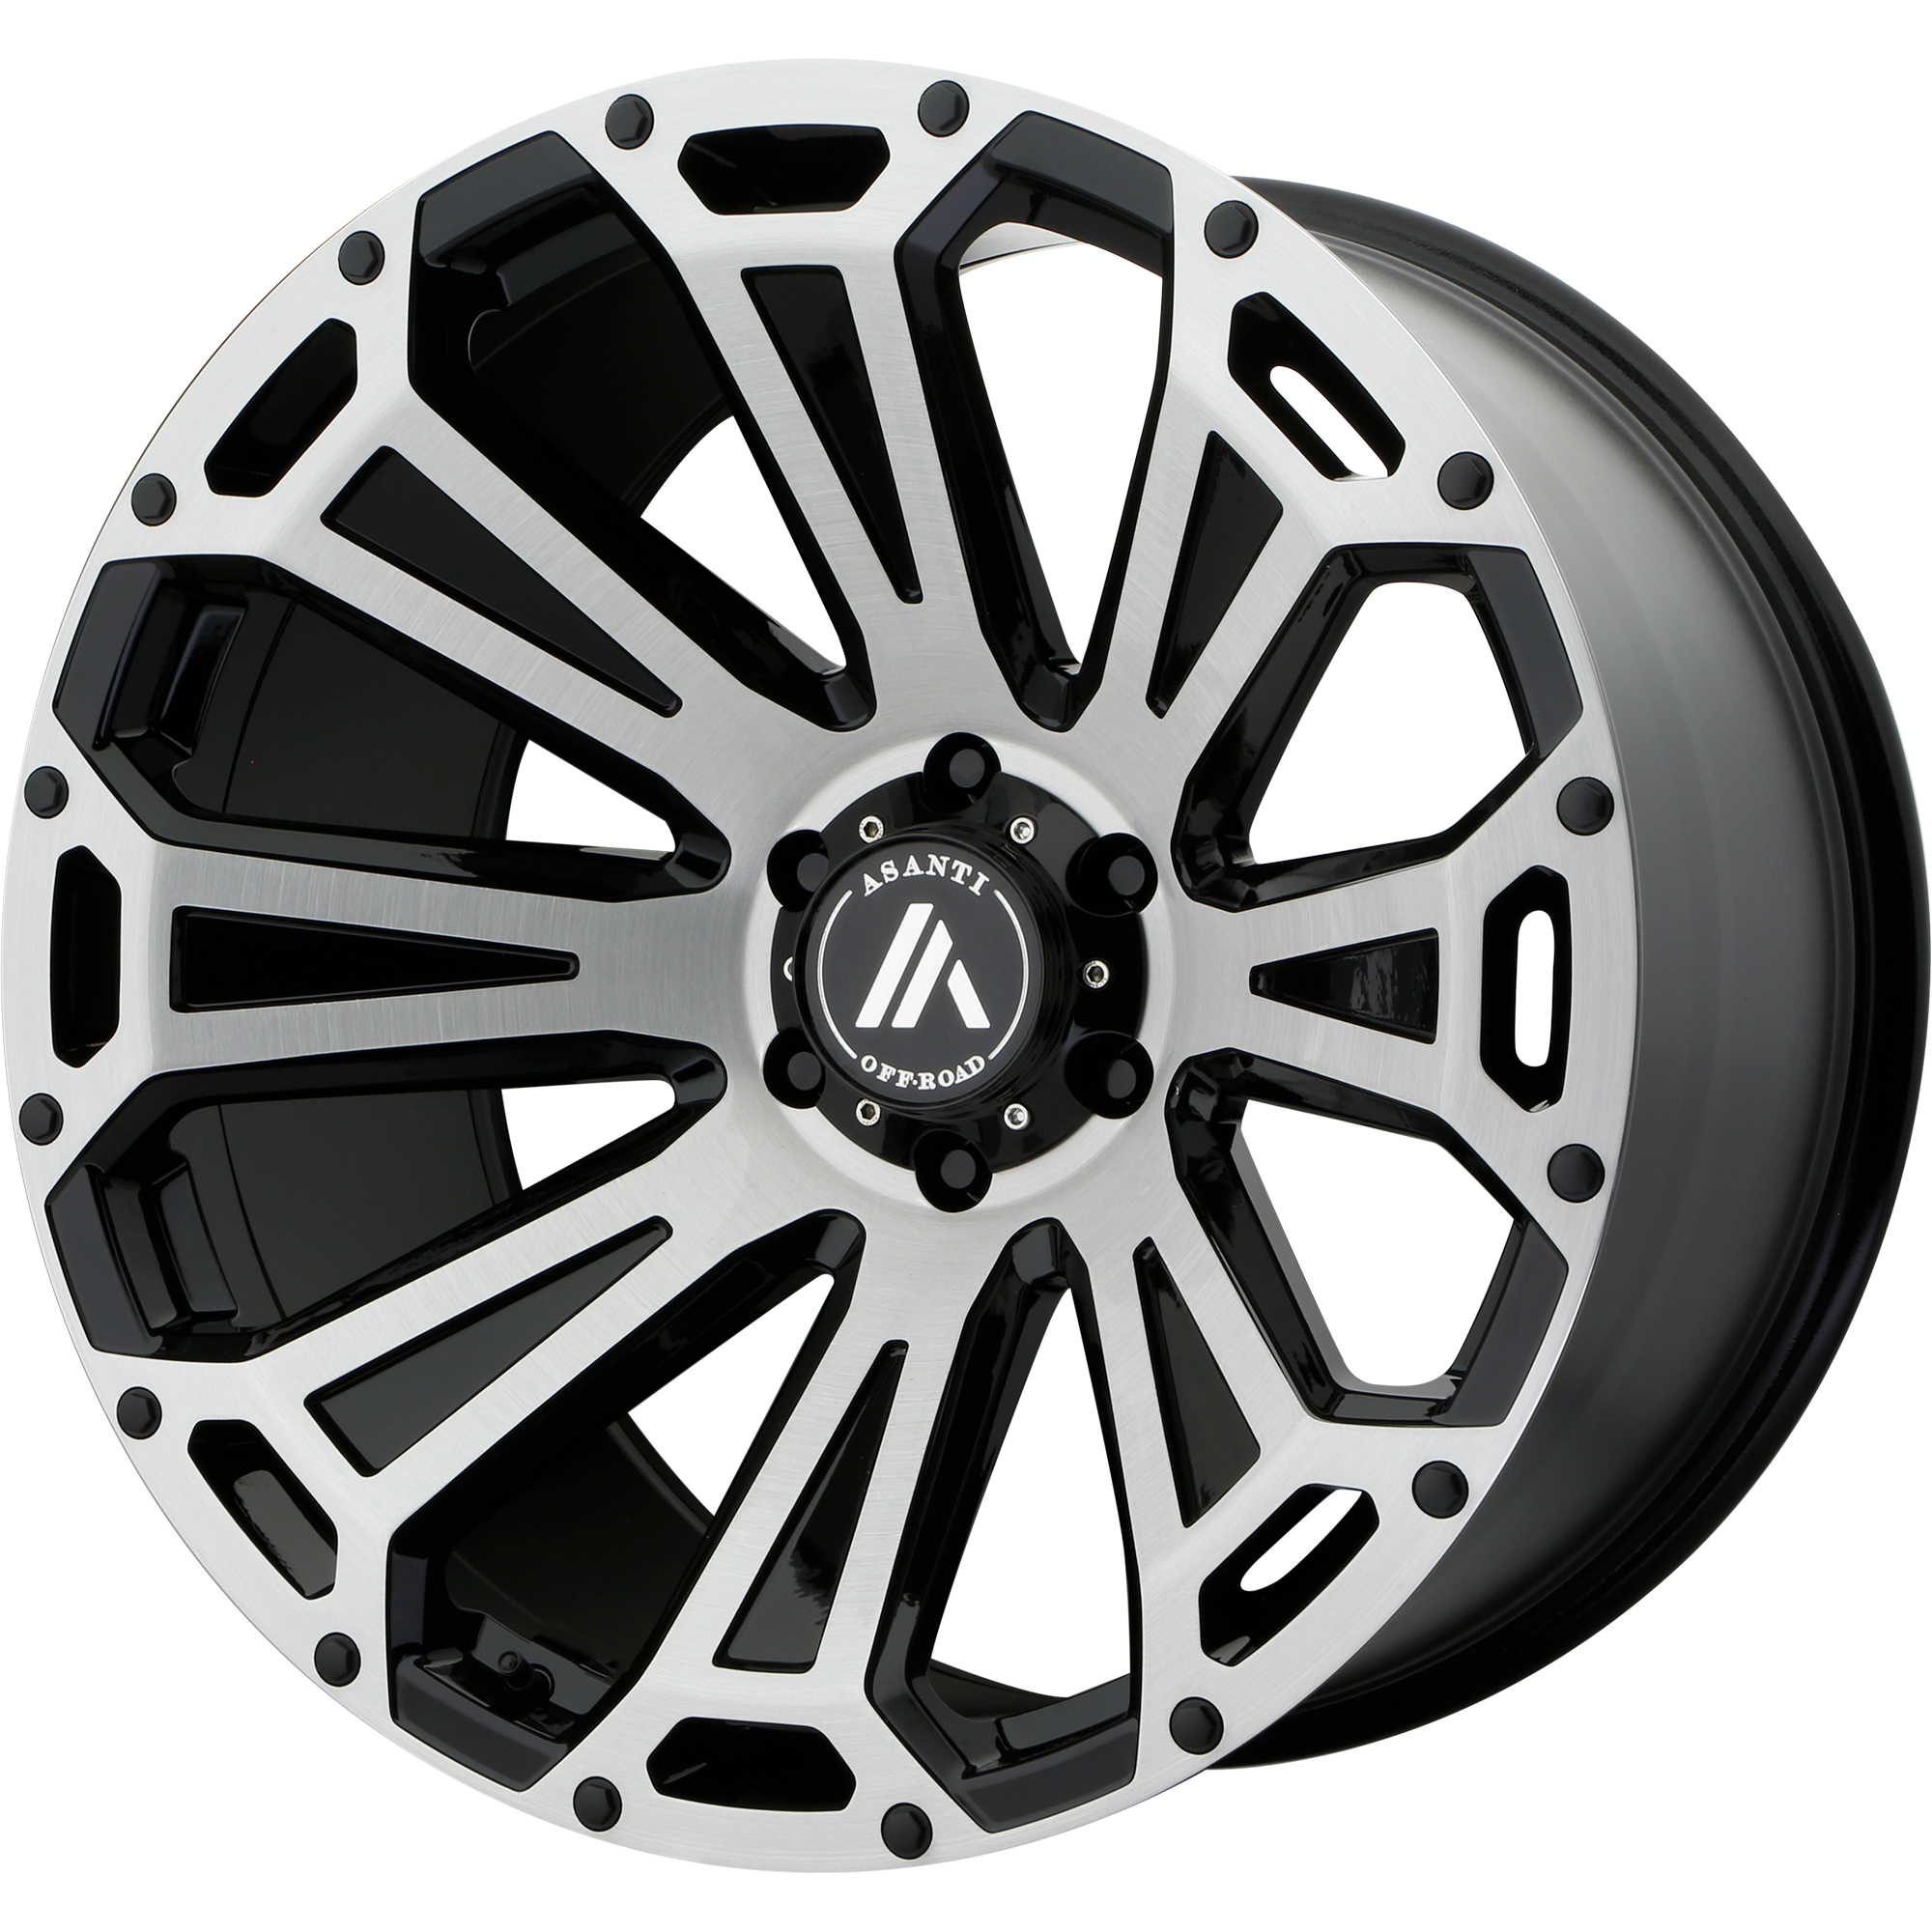 22x10 Asanti Off-Road Wheels AB813 Black-Brushed